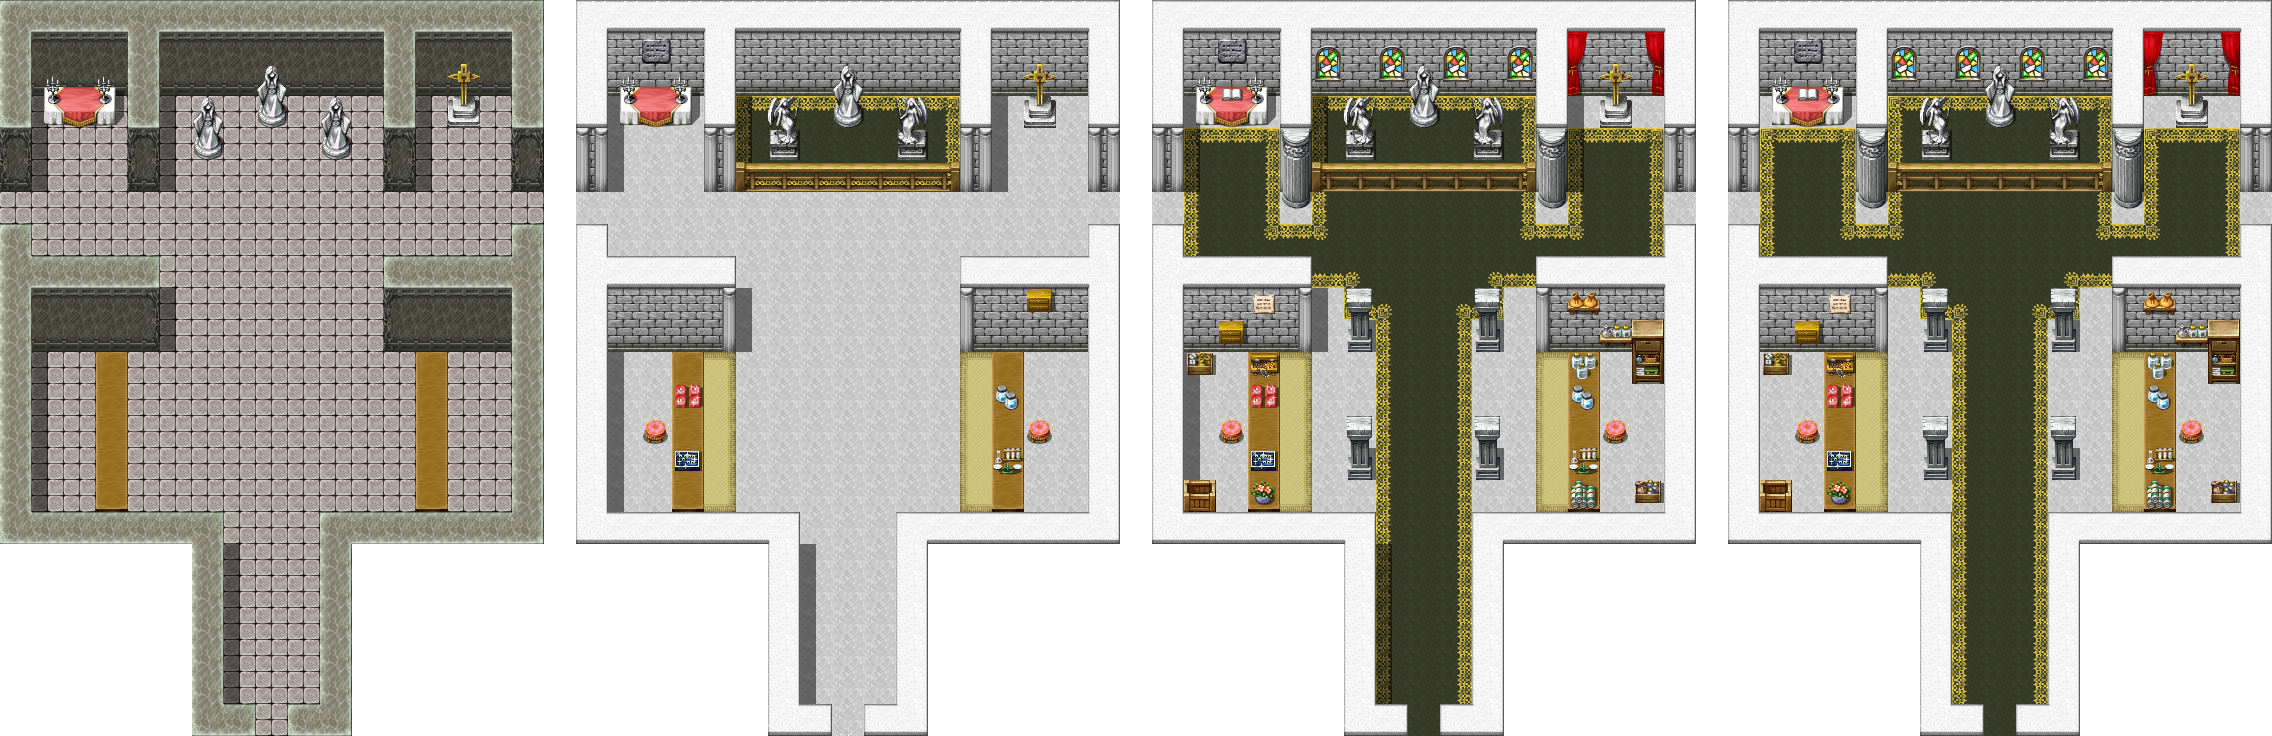 Mapping in 5 easy steps :: rpgmaker net